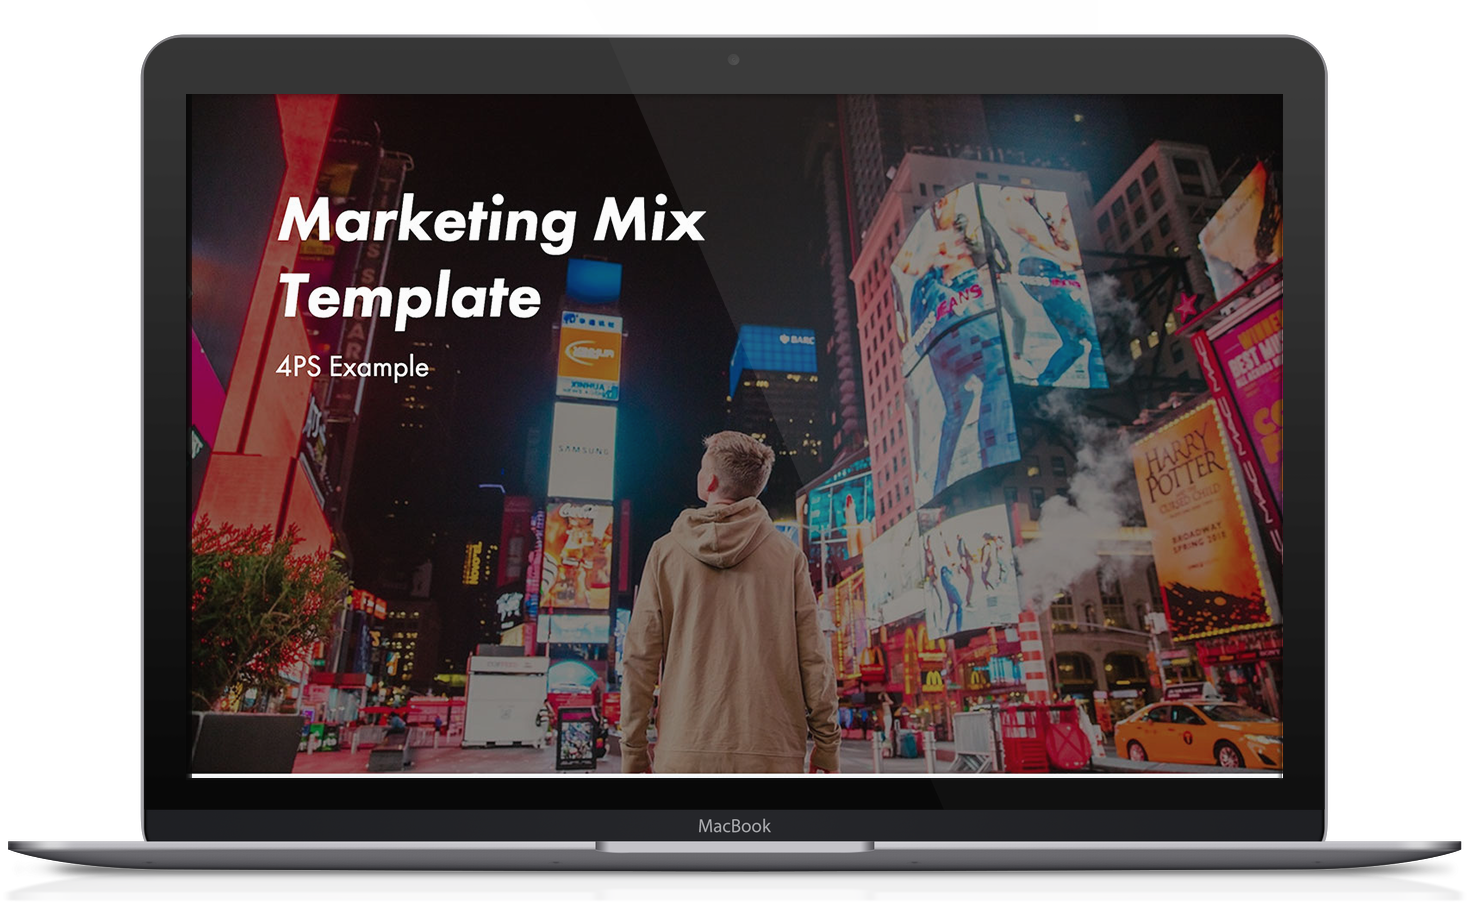 Marketing-mix-example-template-1.png